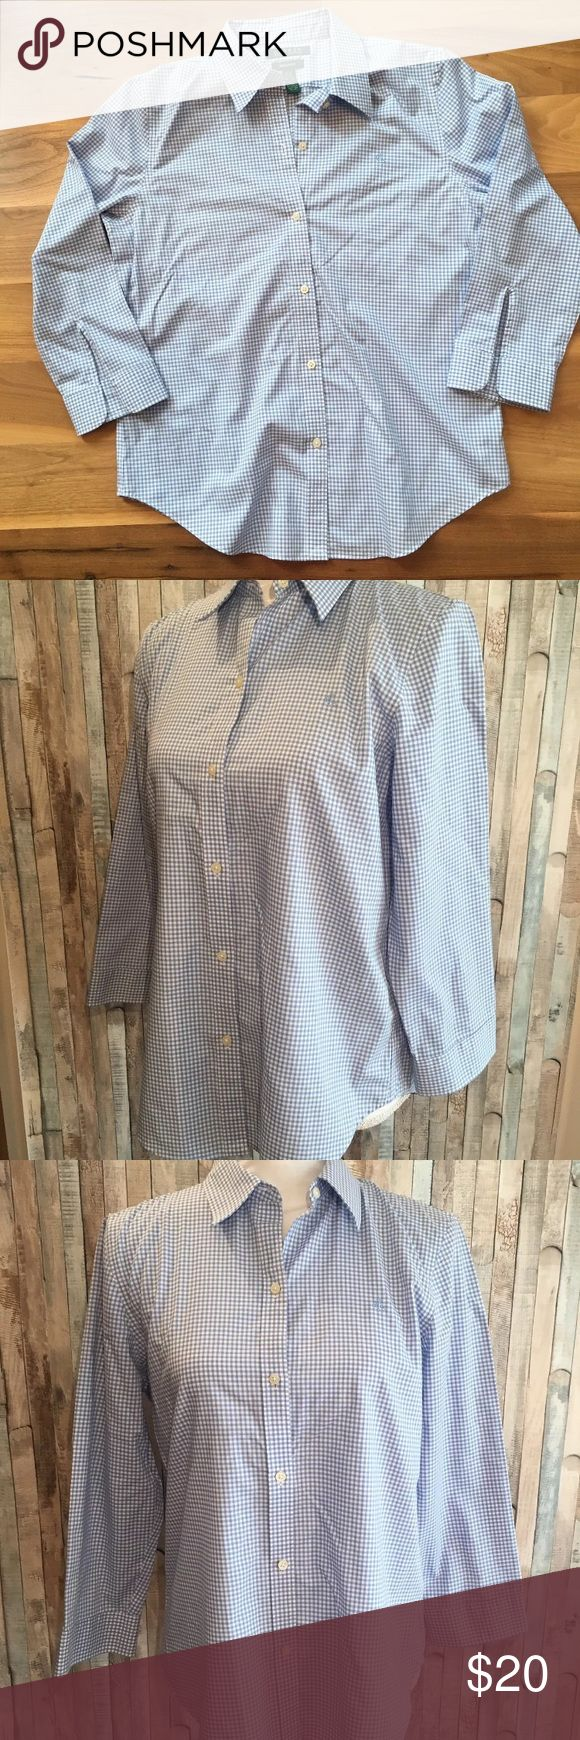 """LAUREN Ralph Lauren Gingham Non Iron Shirt LAUREN Ralph Lauren NON IRON Shirt Size: Medium Color:Blue and White Design: Gingham Sleeves: 3/4th Sleeve Materials:100% Cotton  Measurements (approximate) Length: 26"""" Underarm to underarm (laying flat): 20""""   Condition: Gently preowned, no stains or flaws Lauren Ralph Lauren Tops Button Down Shirts"""